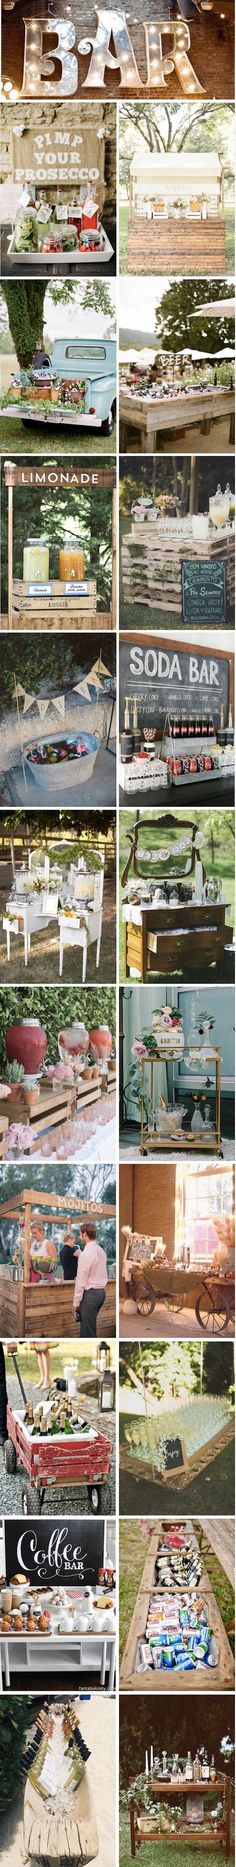 After the great fashion of the Candy Bar, the brides discovered the new trend to have fun . Wedding Cards, Diy Wedding, Rustic Wedding, Dream Wedding, Wedding Day, Wedding Reception Themes, Wedding Decorations, Drinks Wedding, Self Service